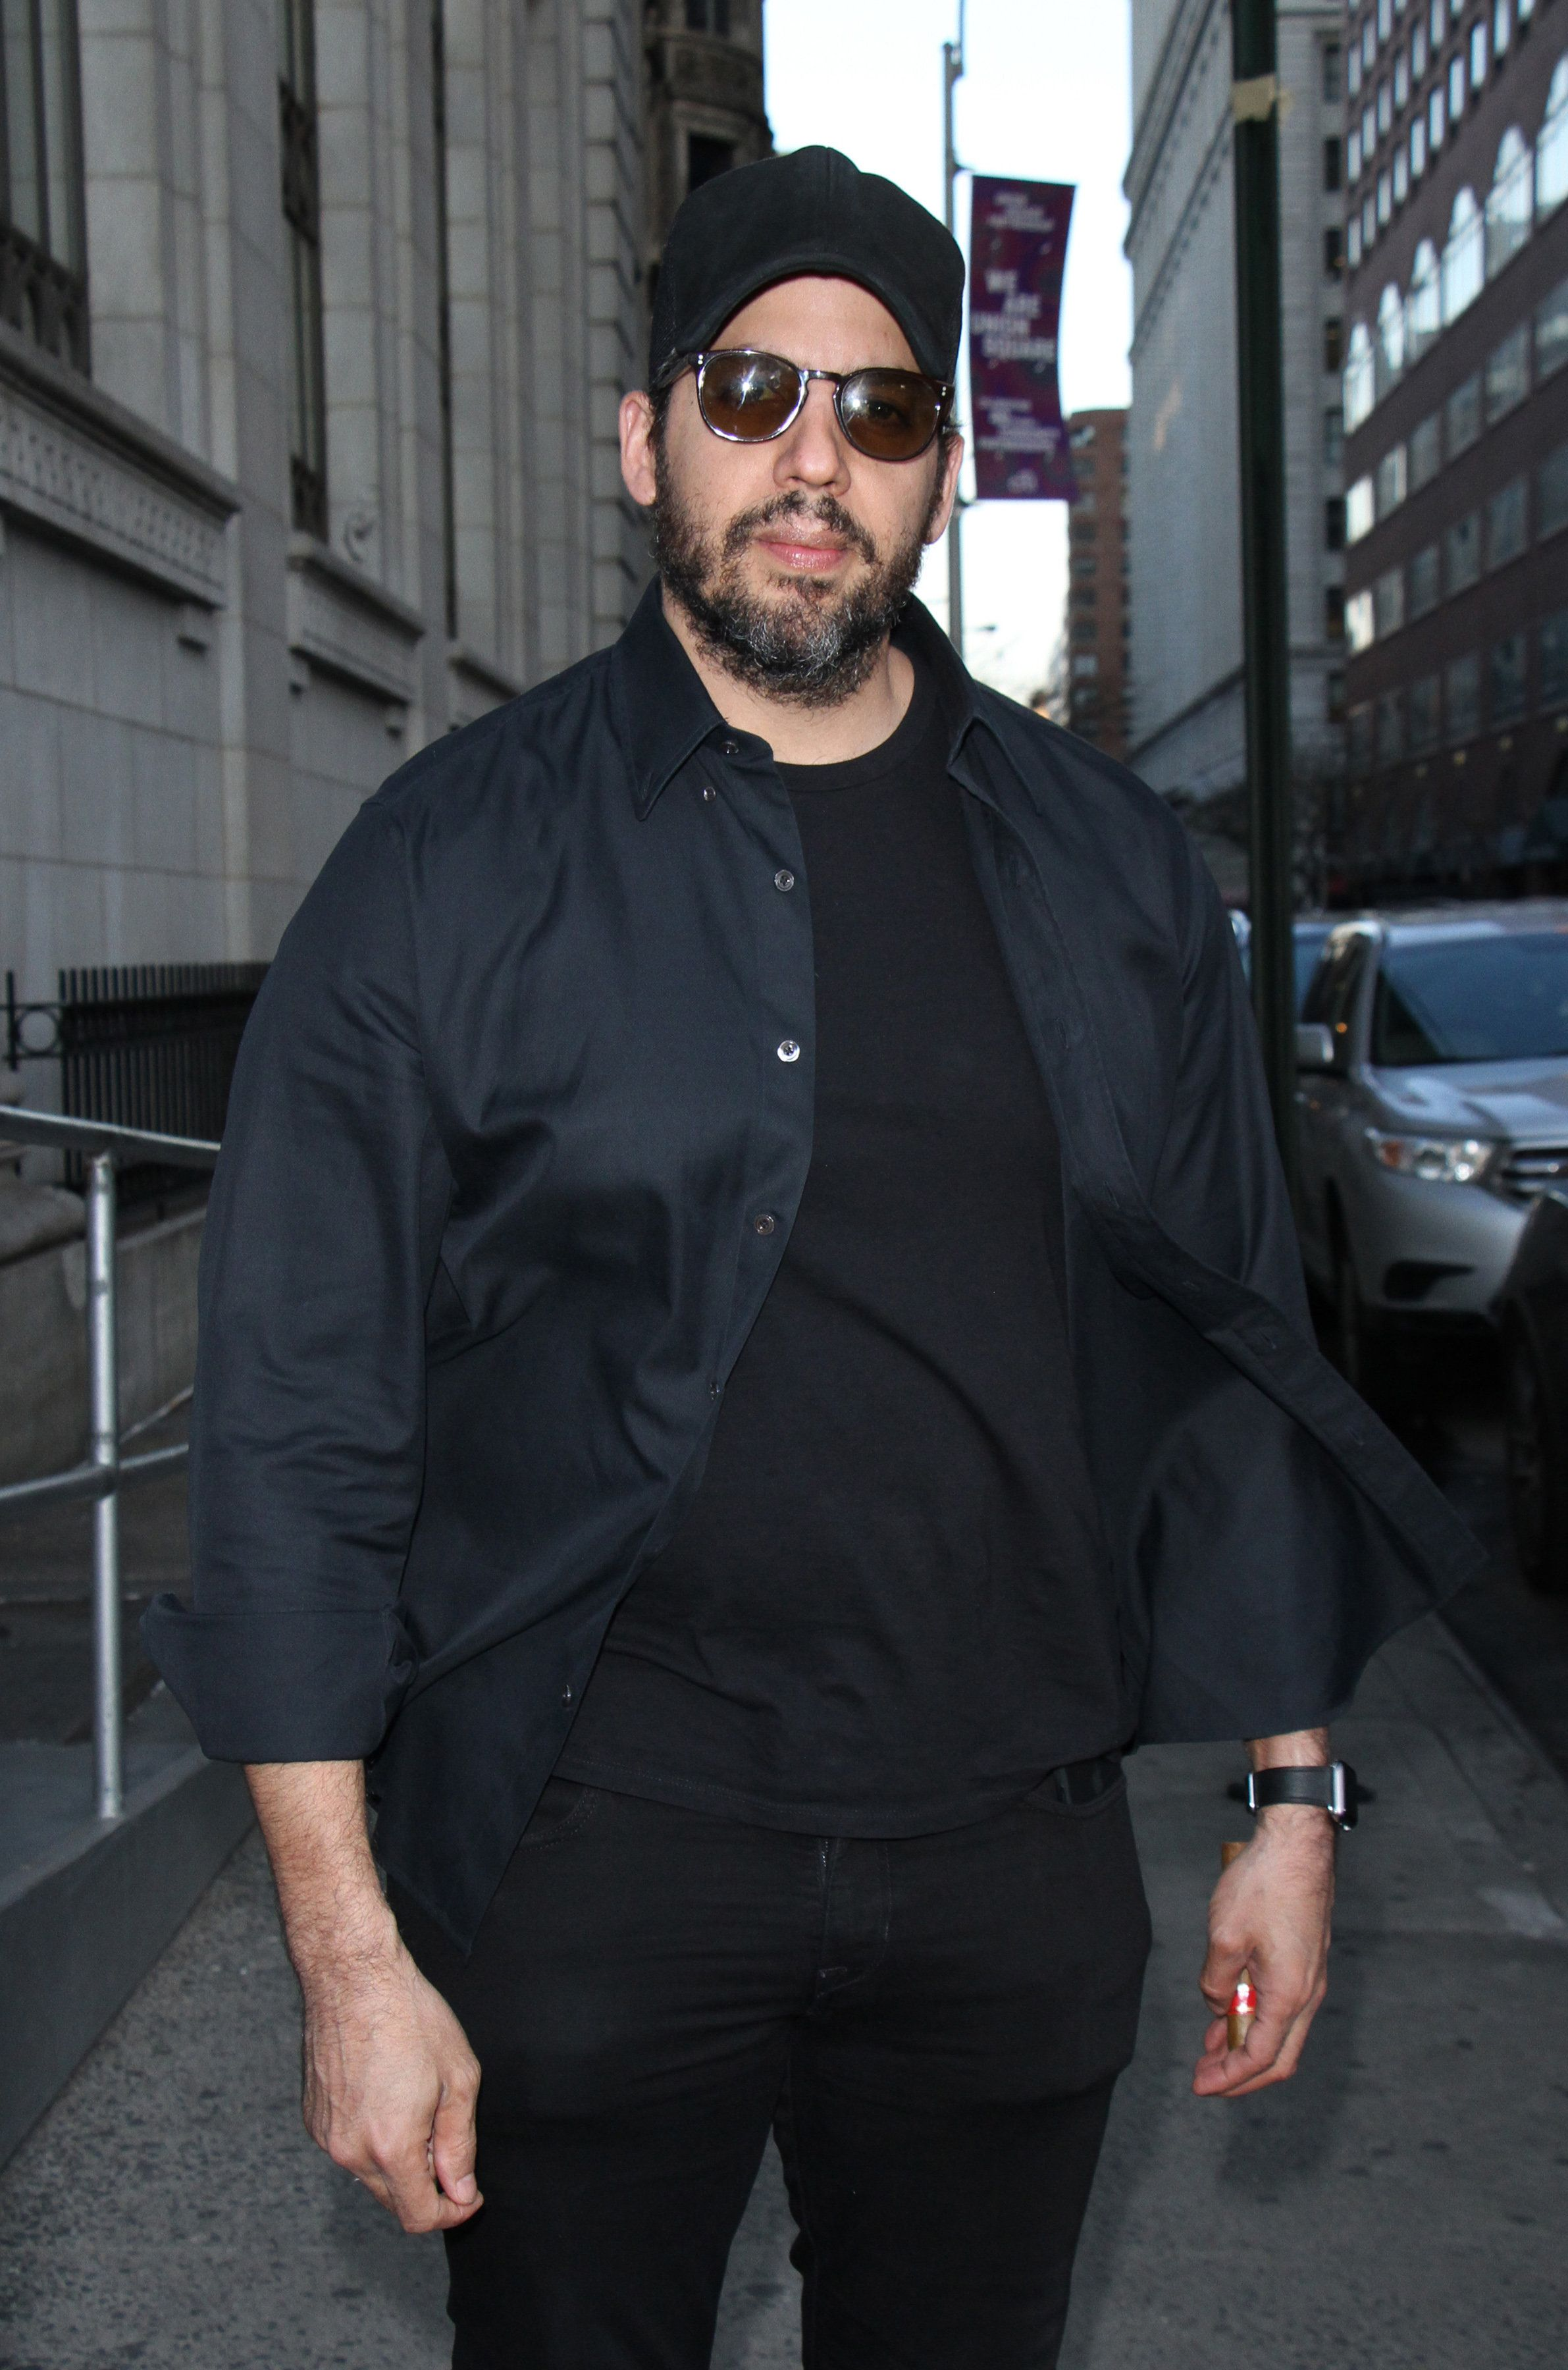 NEW YORK, NY - APRIL 12: David Blaine arriving to the opening night of Neil Patrick Harris presents In & Of Itself Identity Is An Illusion at the Daryl Roth Theatre in New York City on April 12, 2017. Credit: RW/MediaPunch/IPX